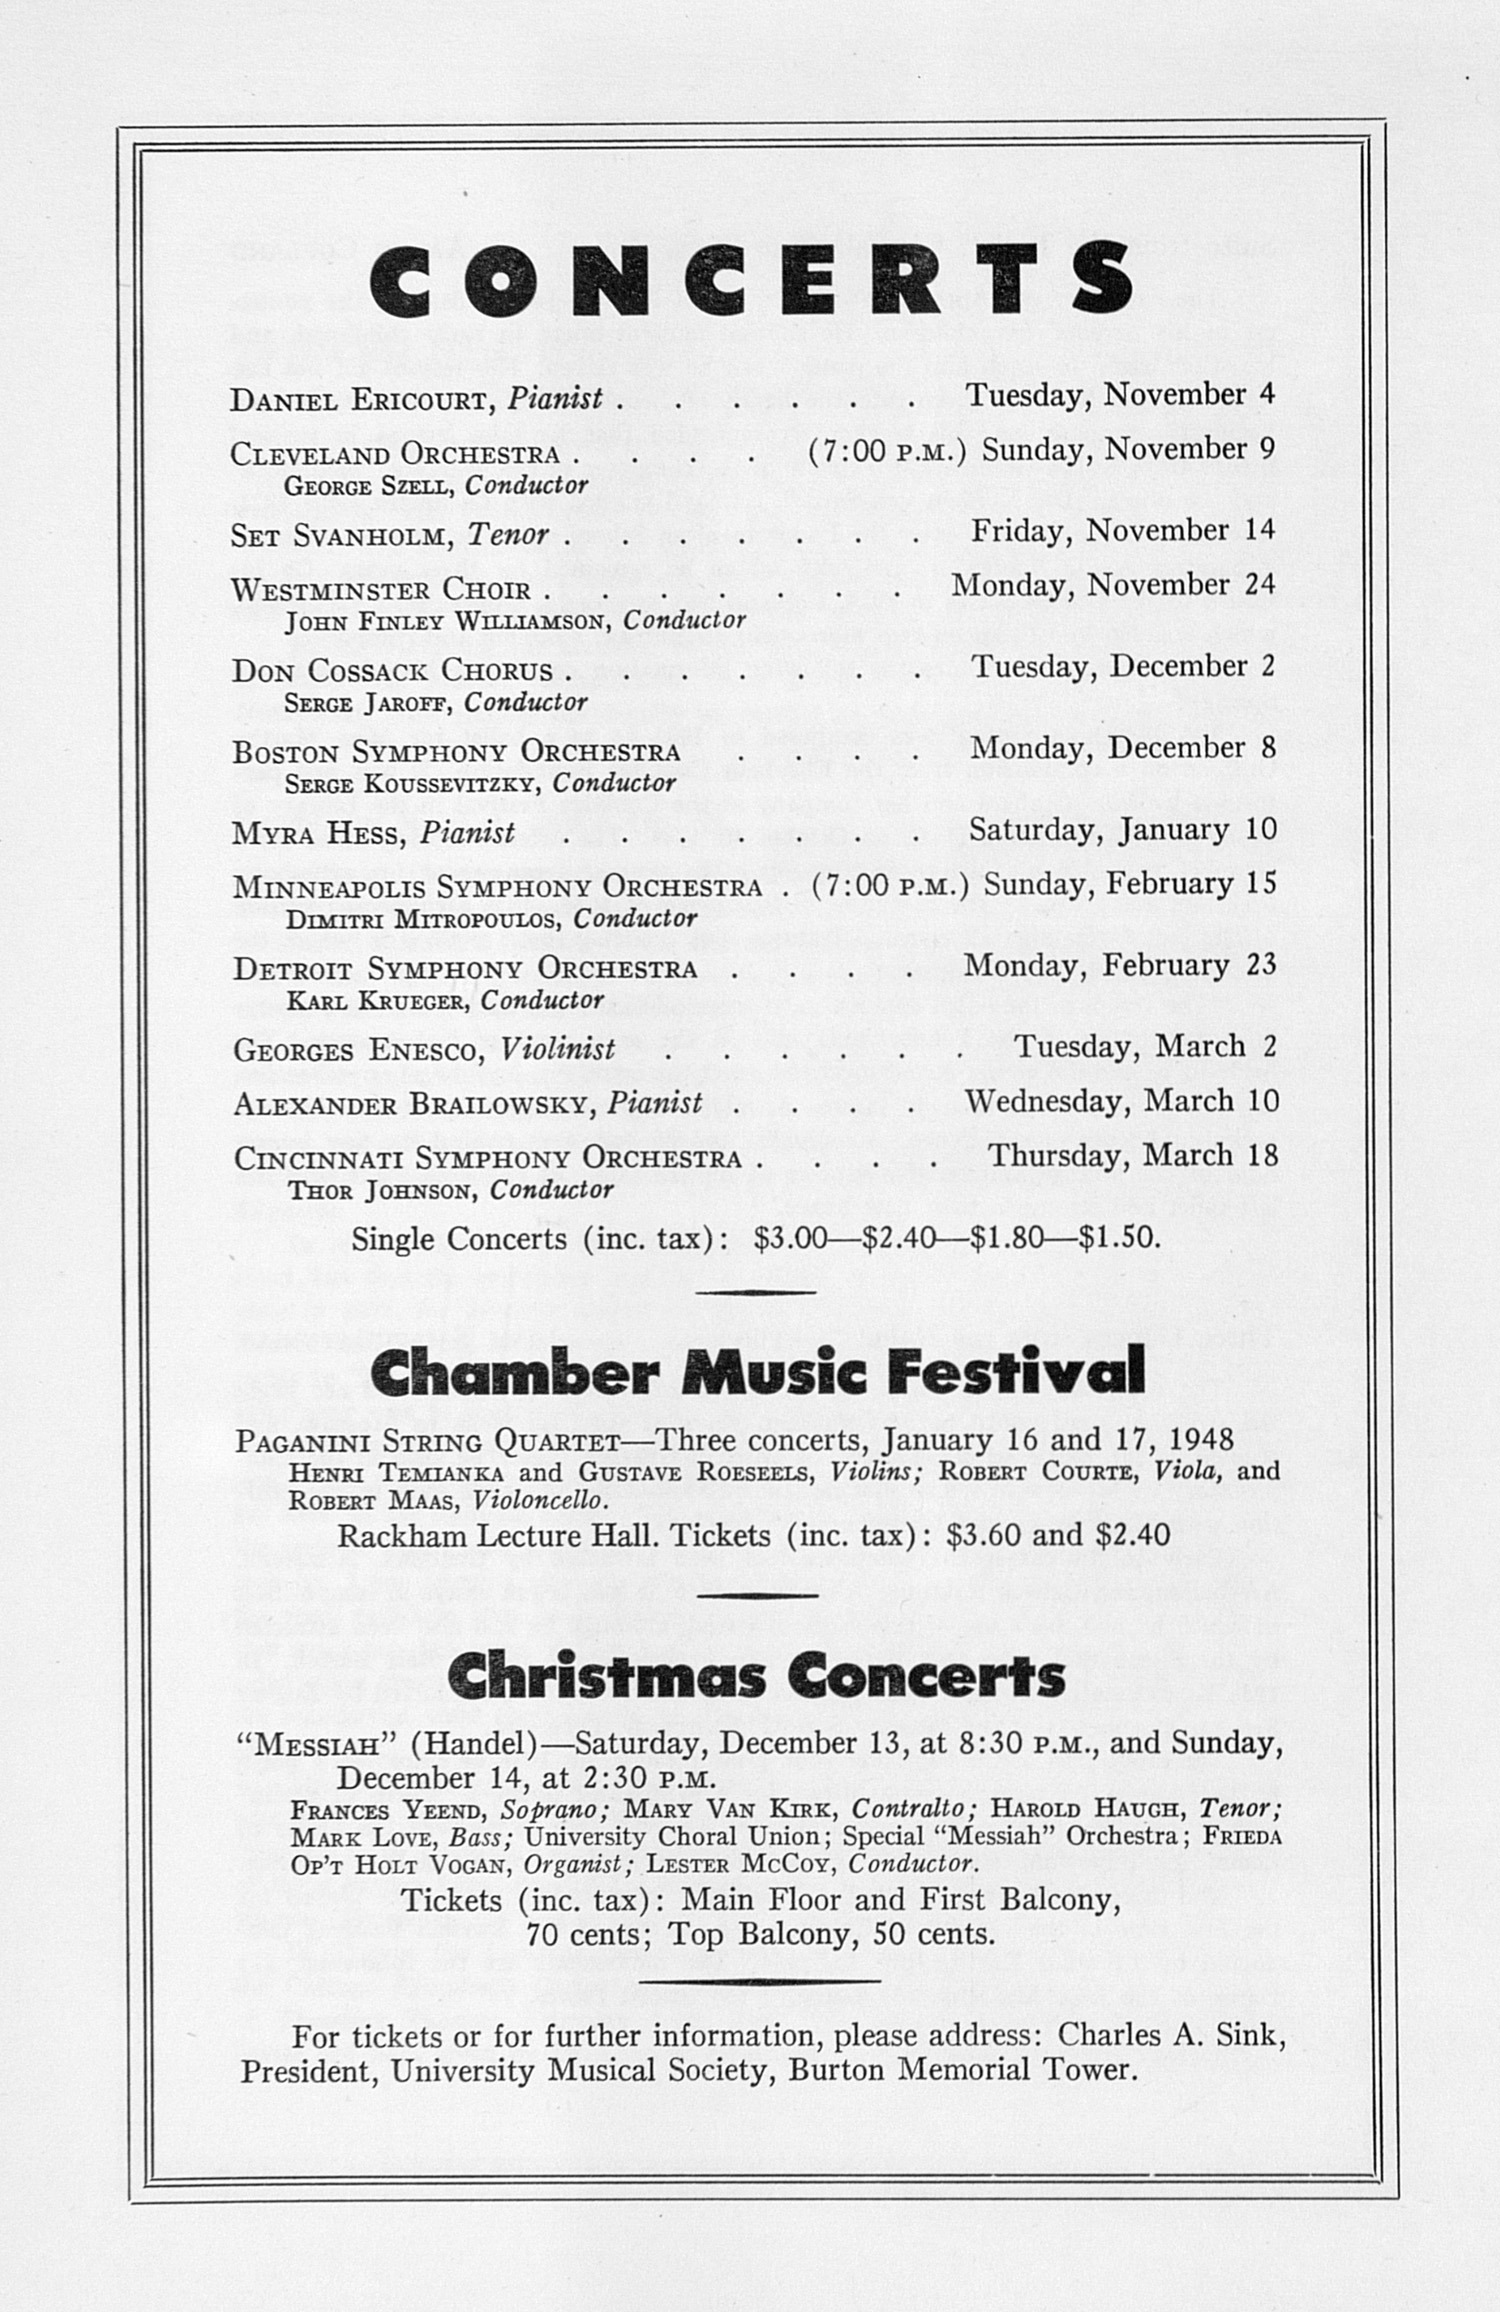 UMS Concert Program, October 26, 1947: Sixty-ninth Annual Choral Union Concert Series -- Chicago Symphony Orchestra image